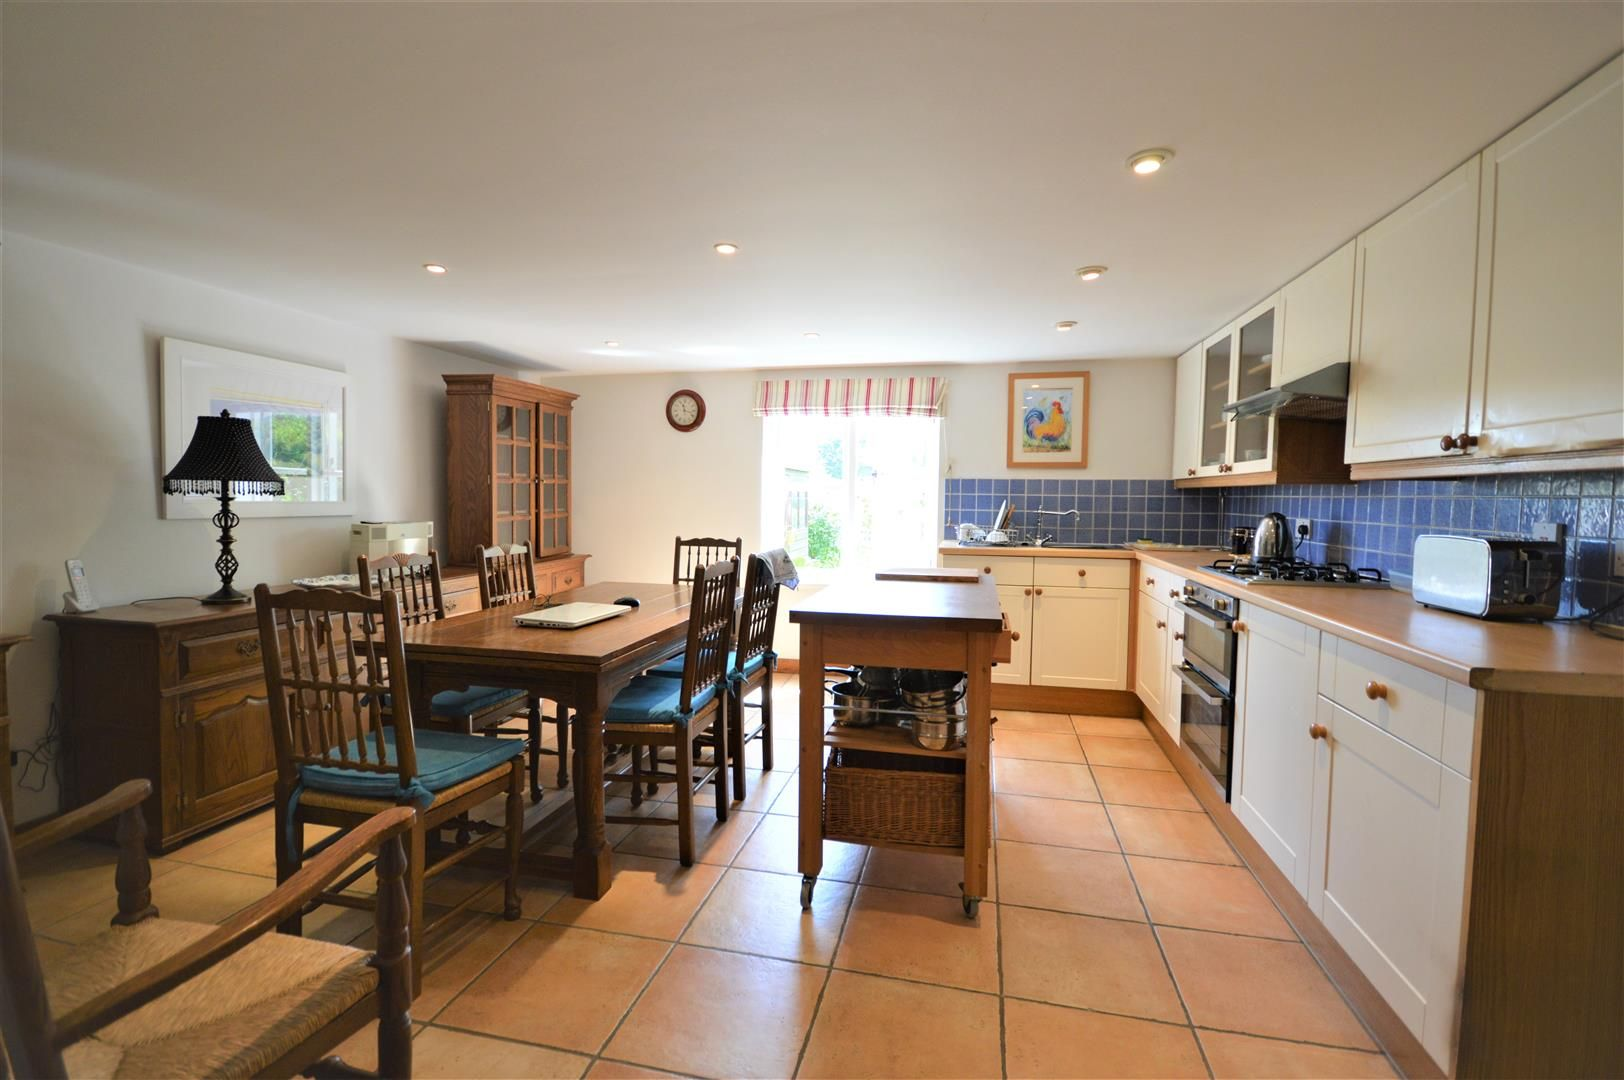 3 bed barn-conversion for sale in Stoke Prior 3